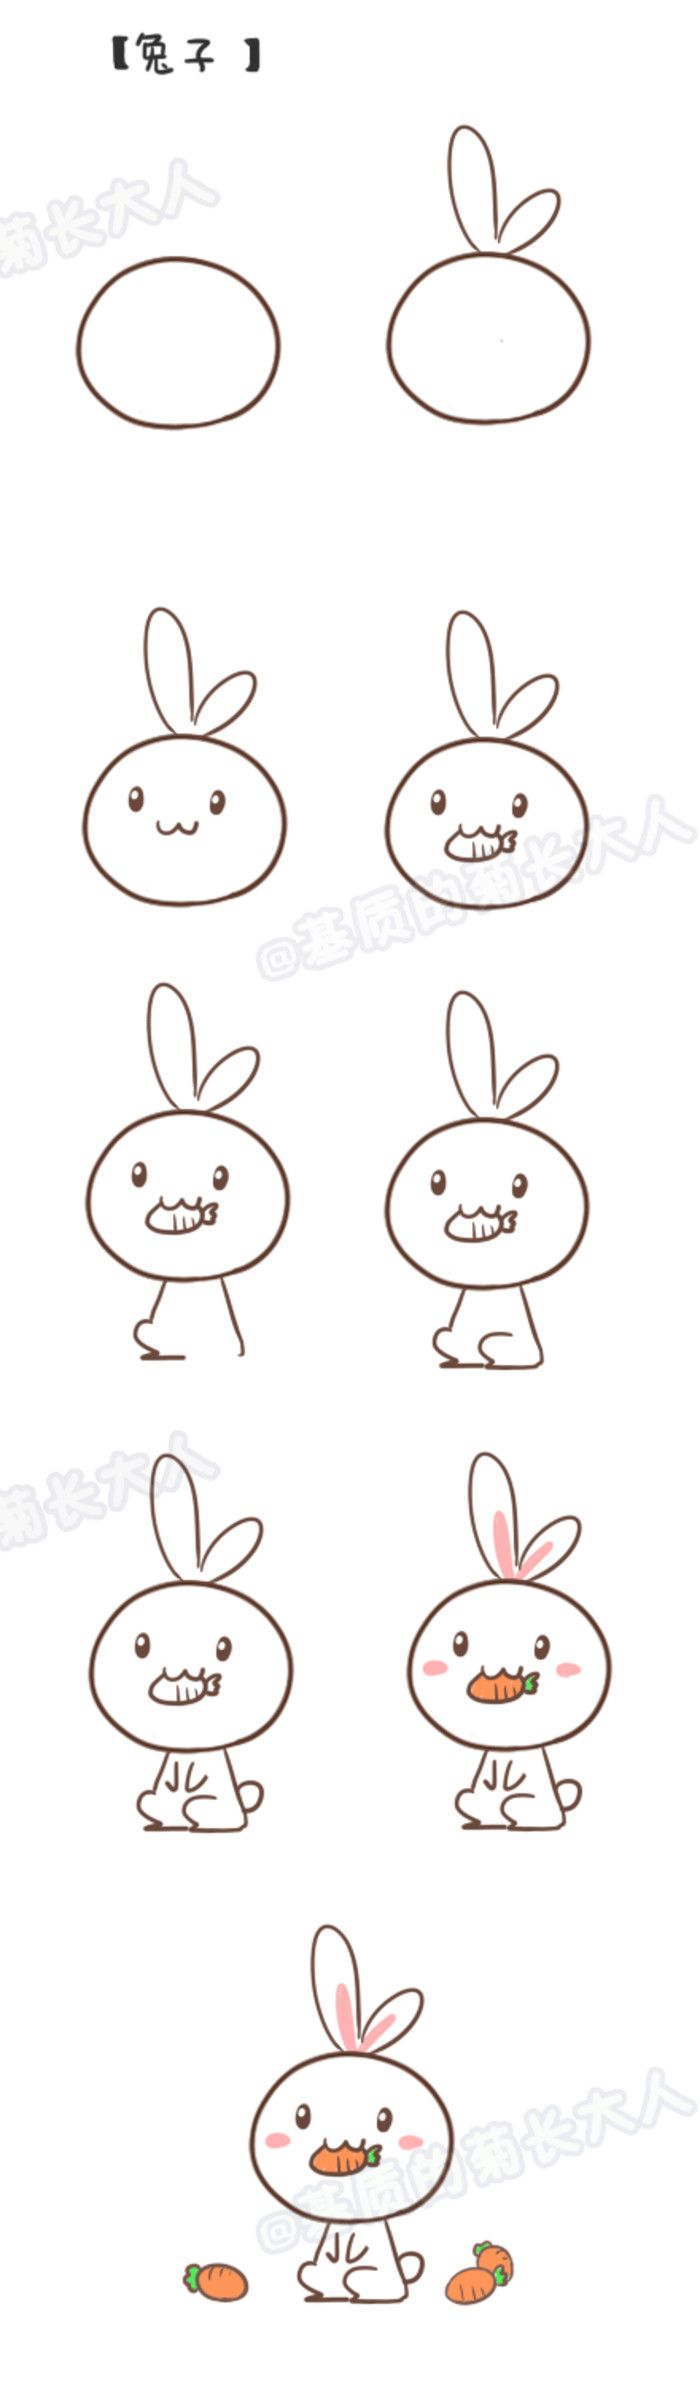 how to draw a rabbit face